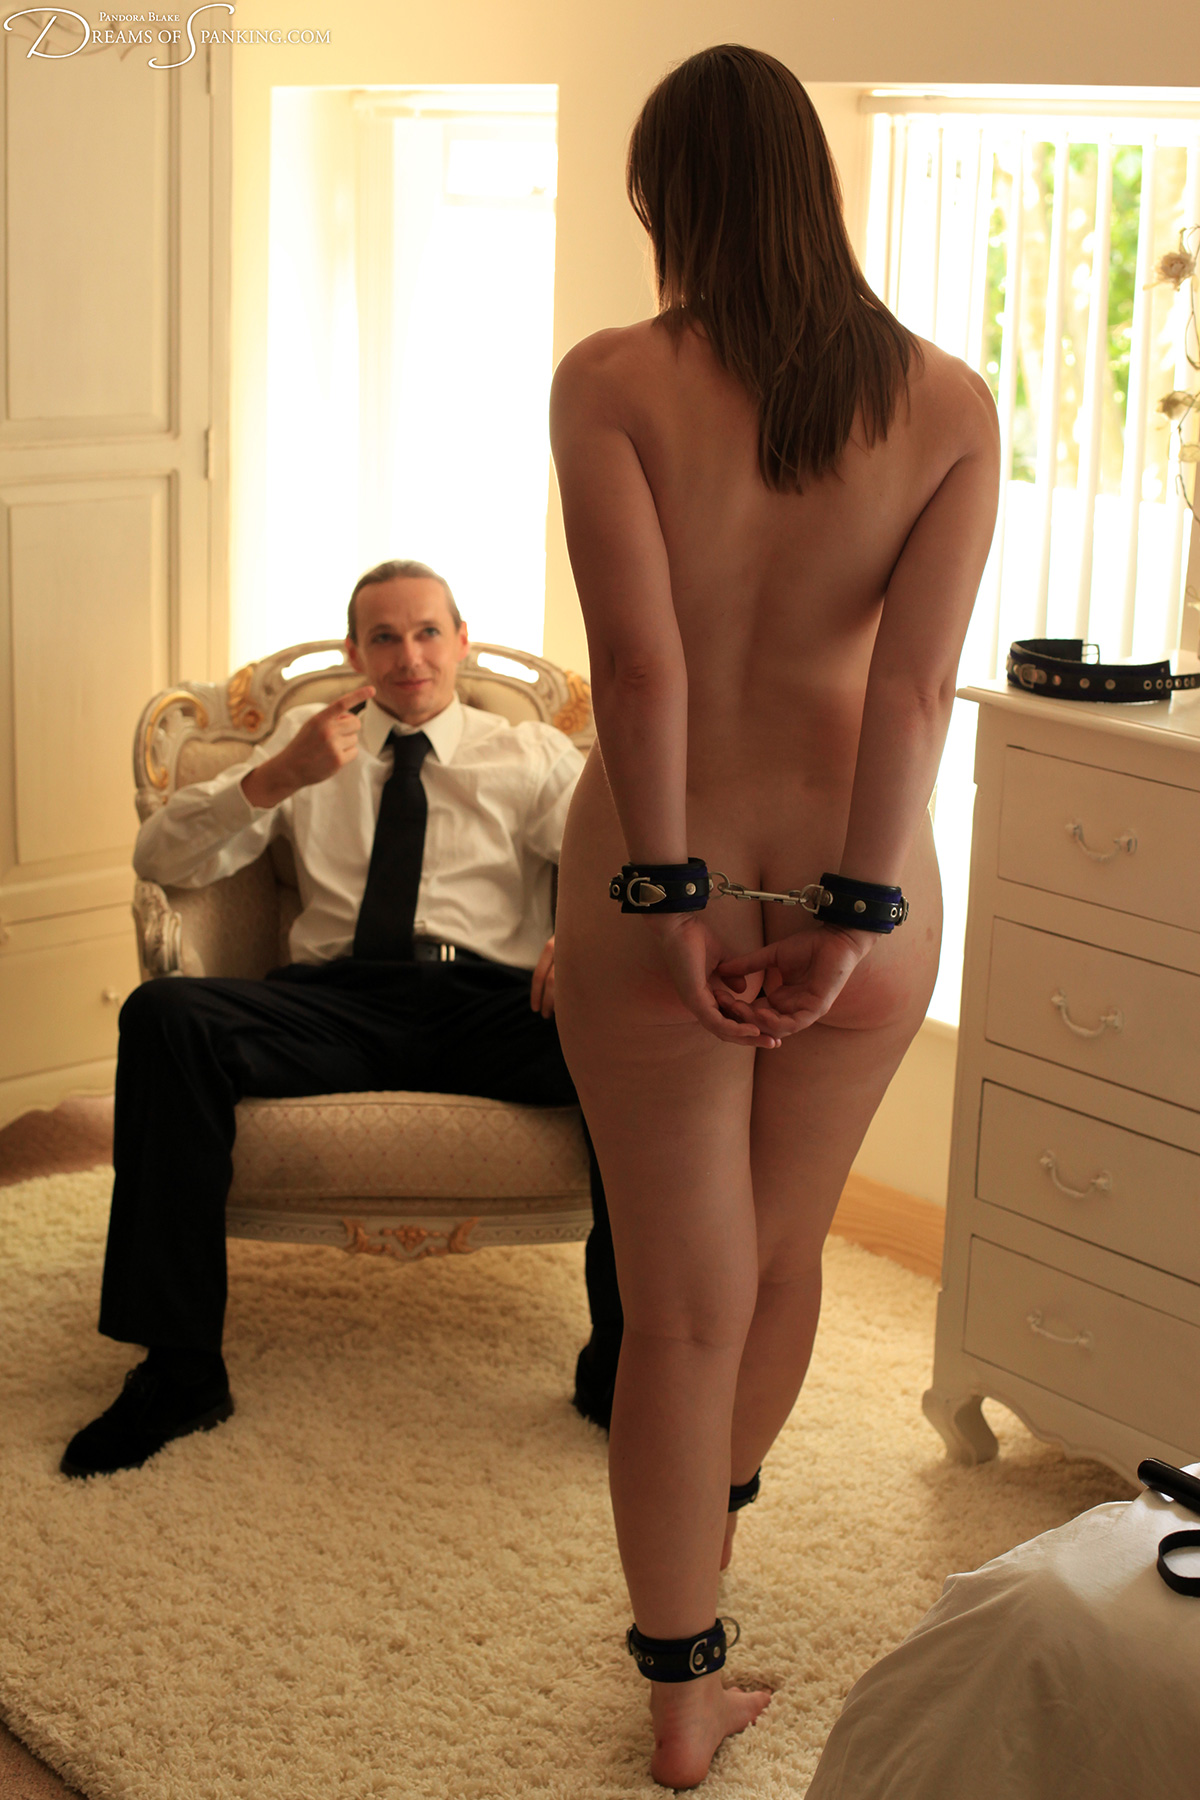 A naked, cuffed submissive walks towards her master as he beckons her to come closer.